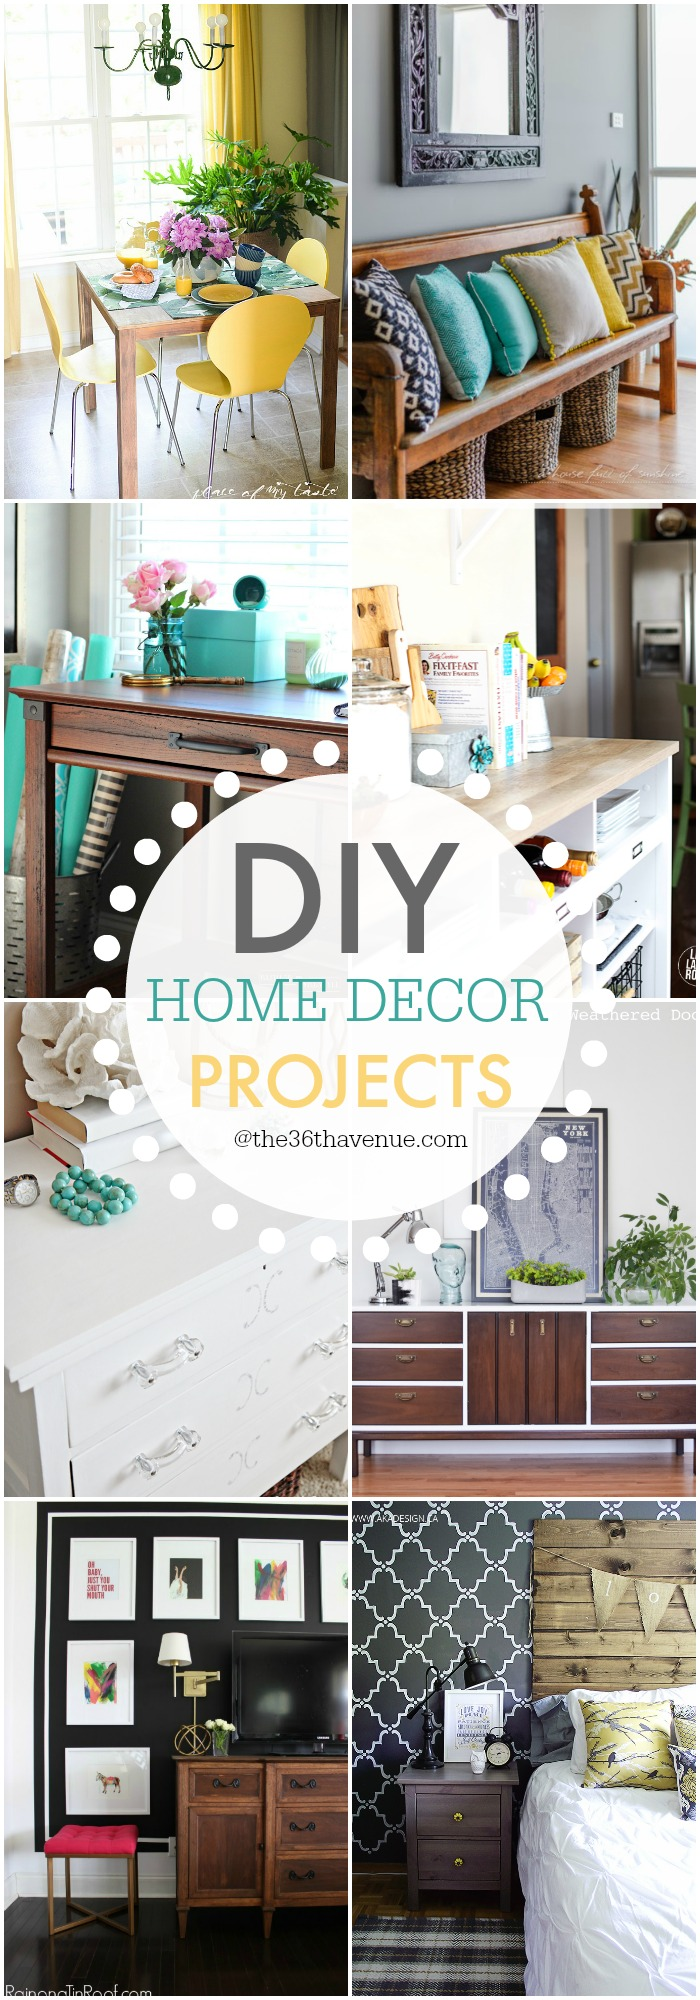 The 36th avenue diy home decor projects and ideas the for At home picture ideas